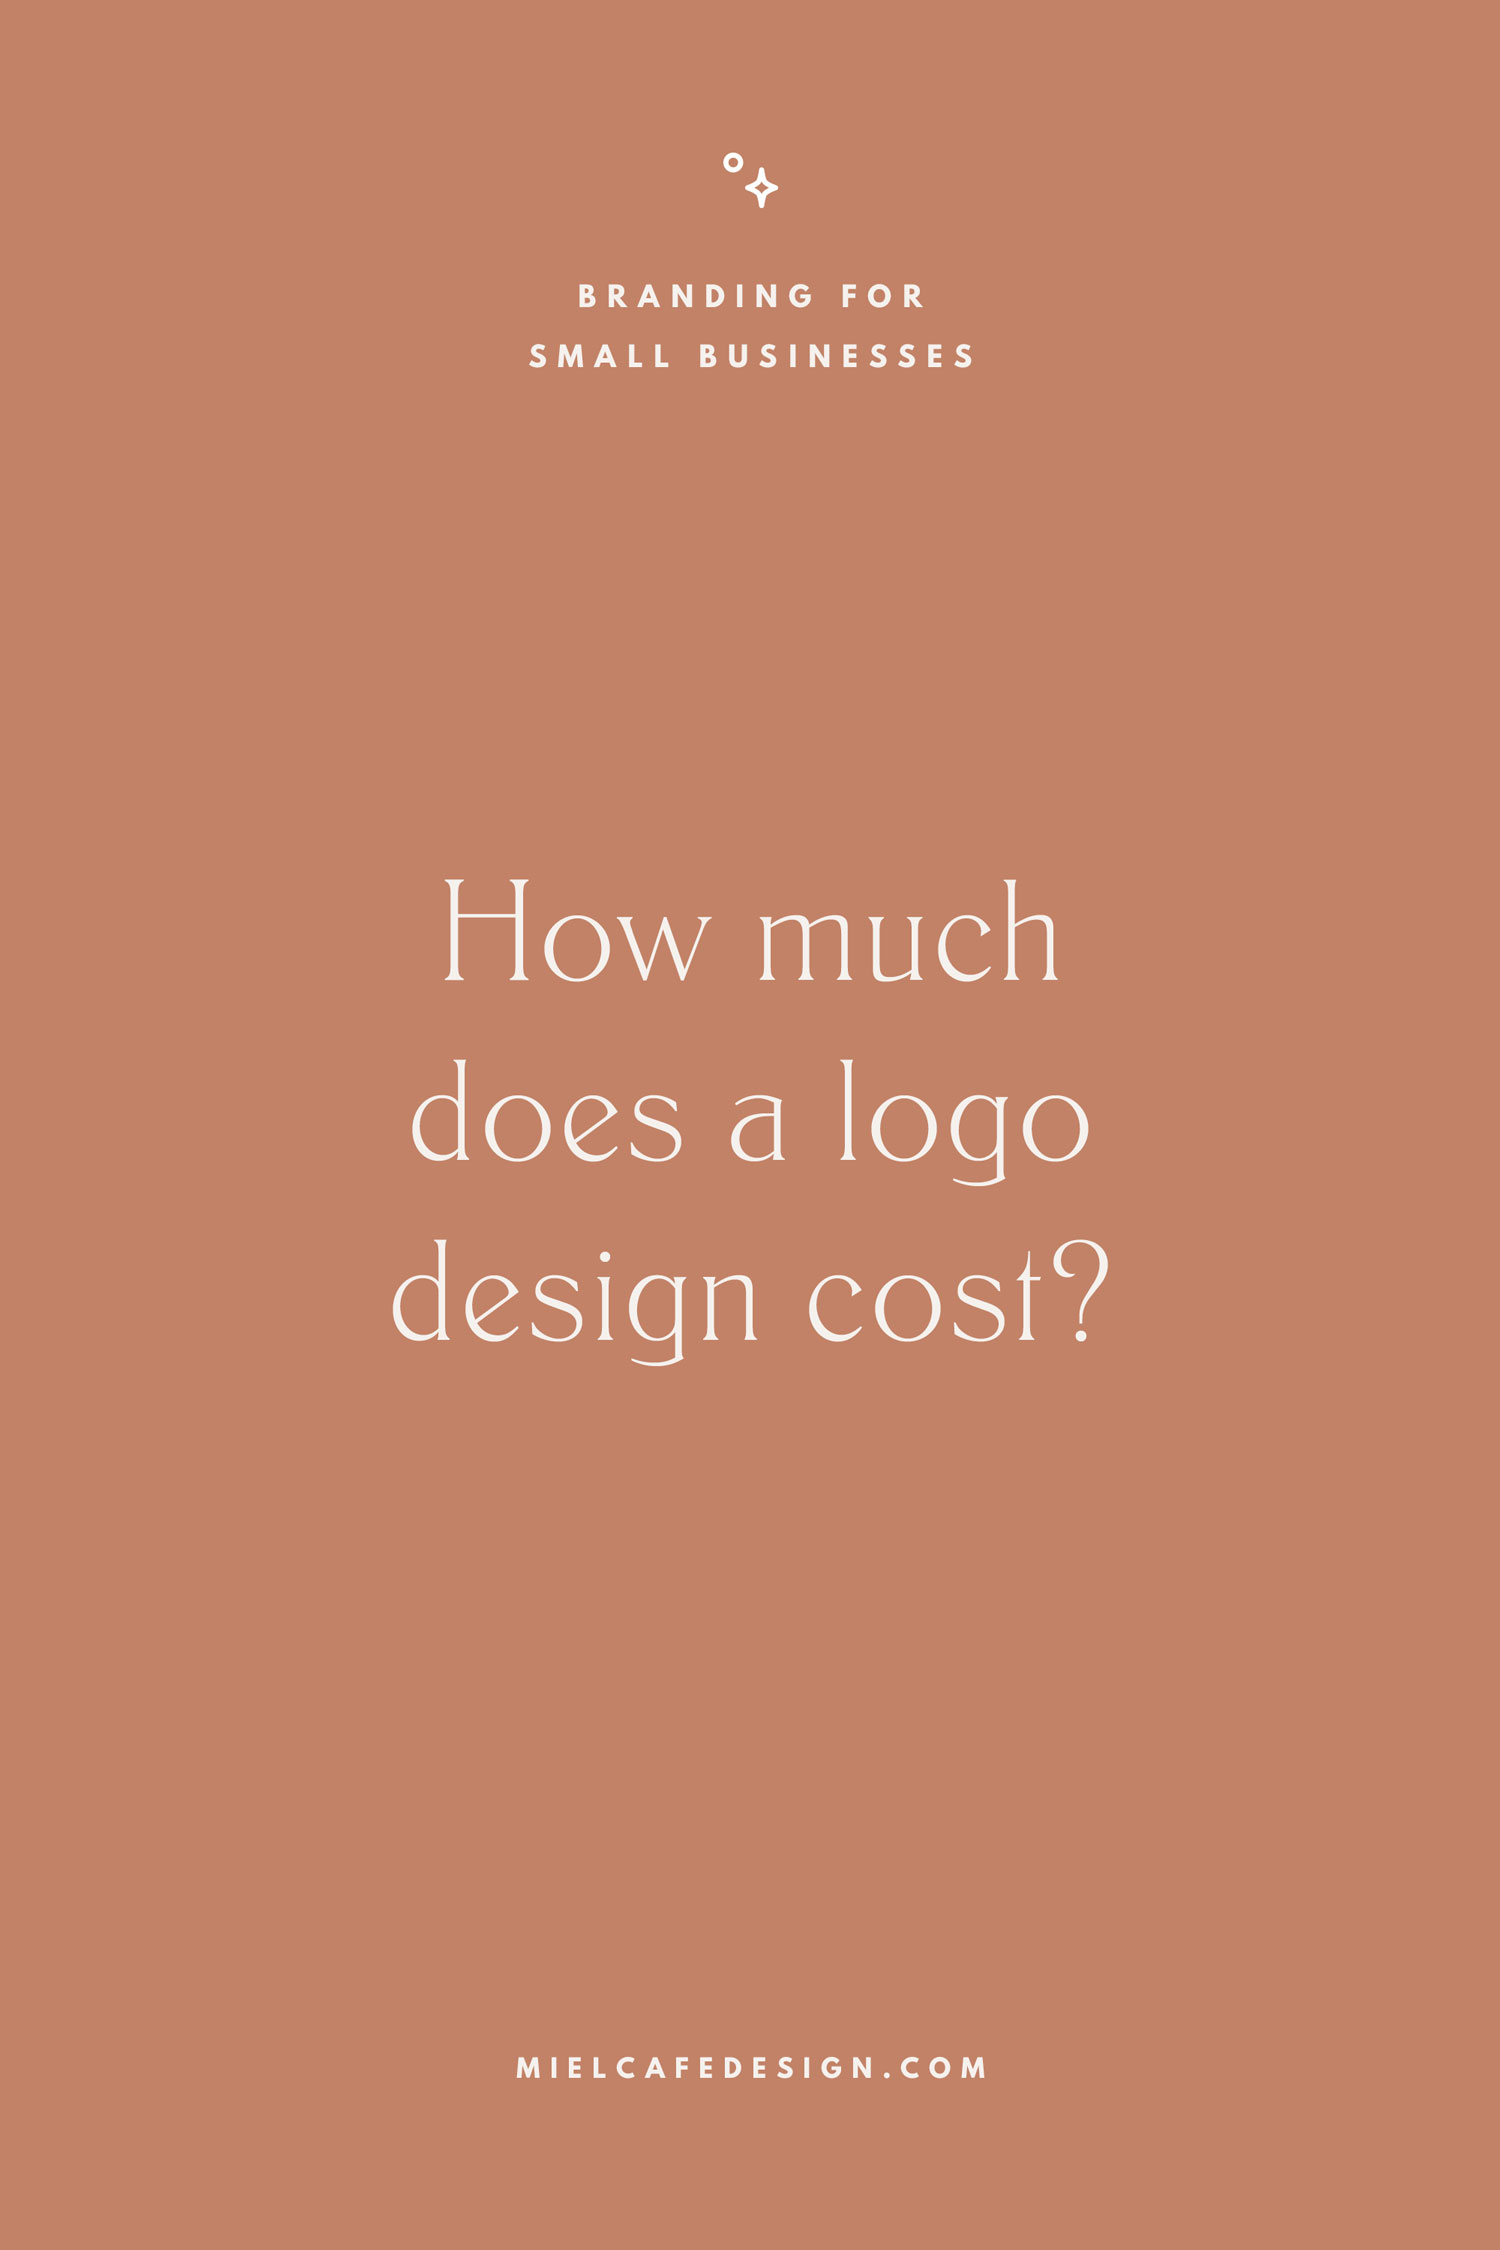 Branding for small businesses: how much does a logo design cost and what to take into consideration when hiring a designer